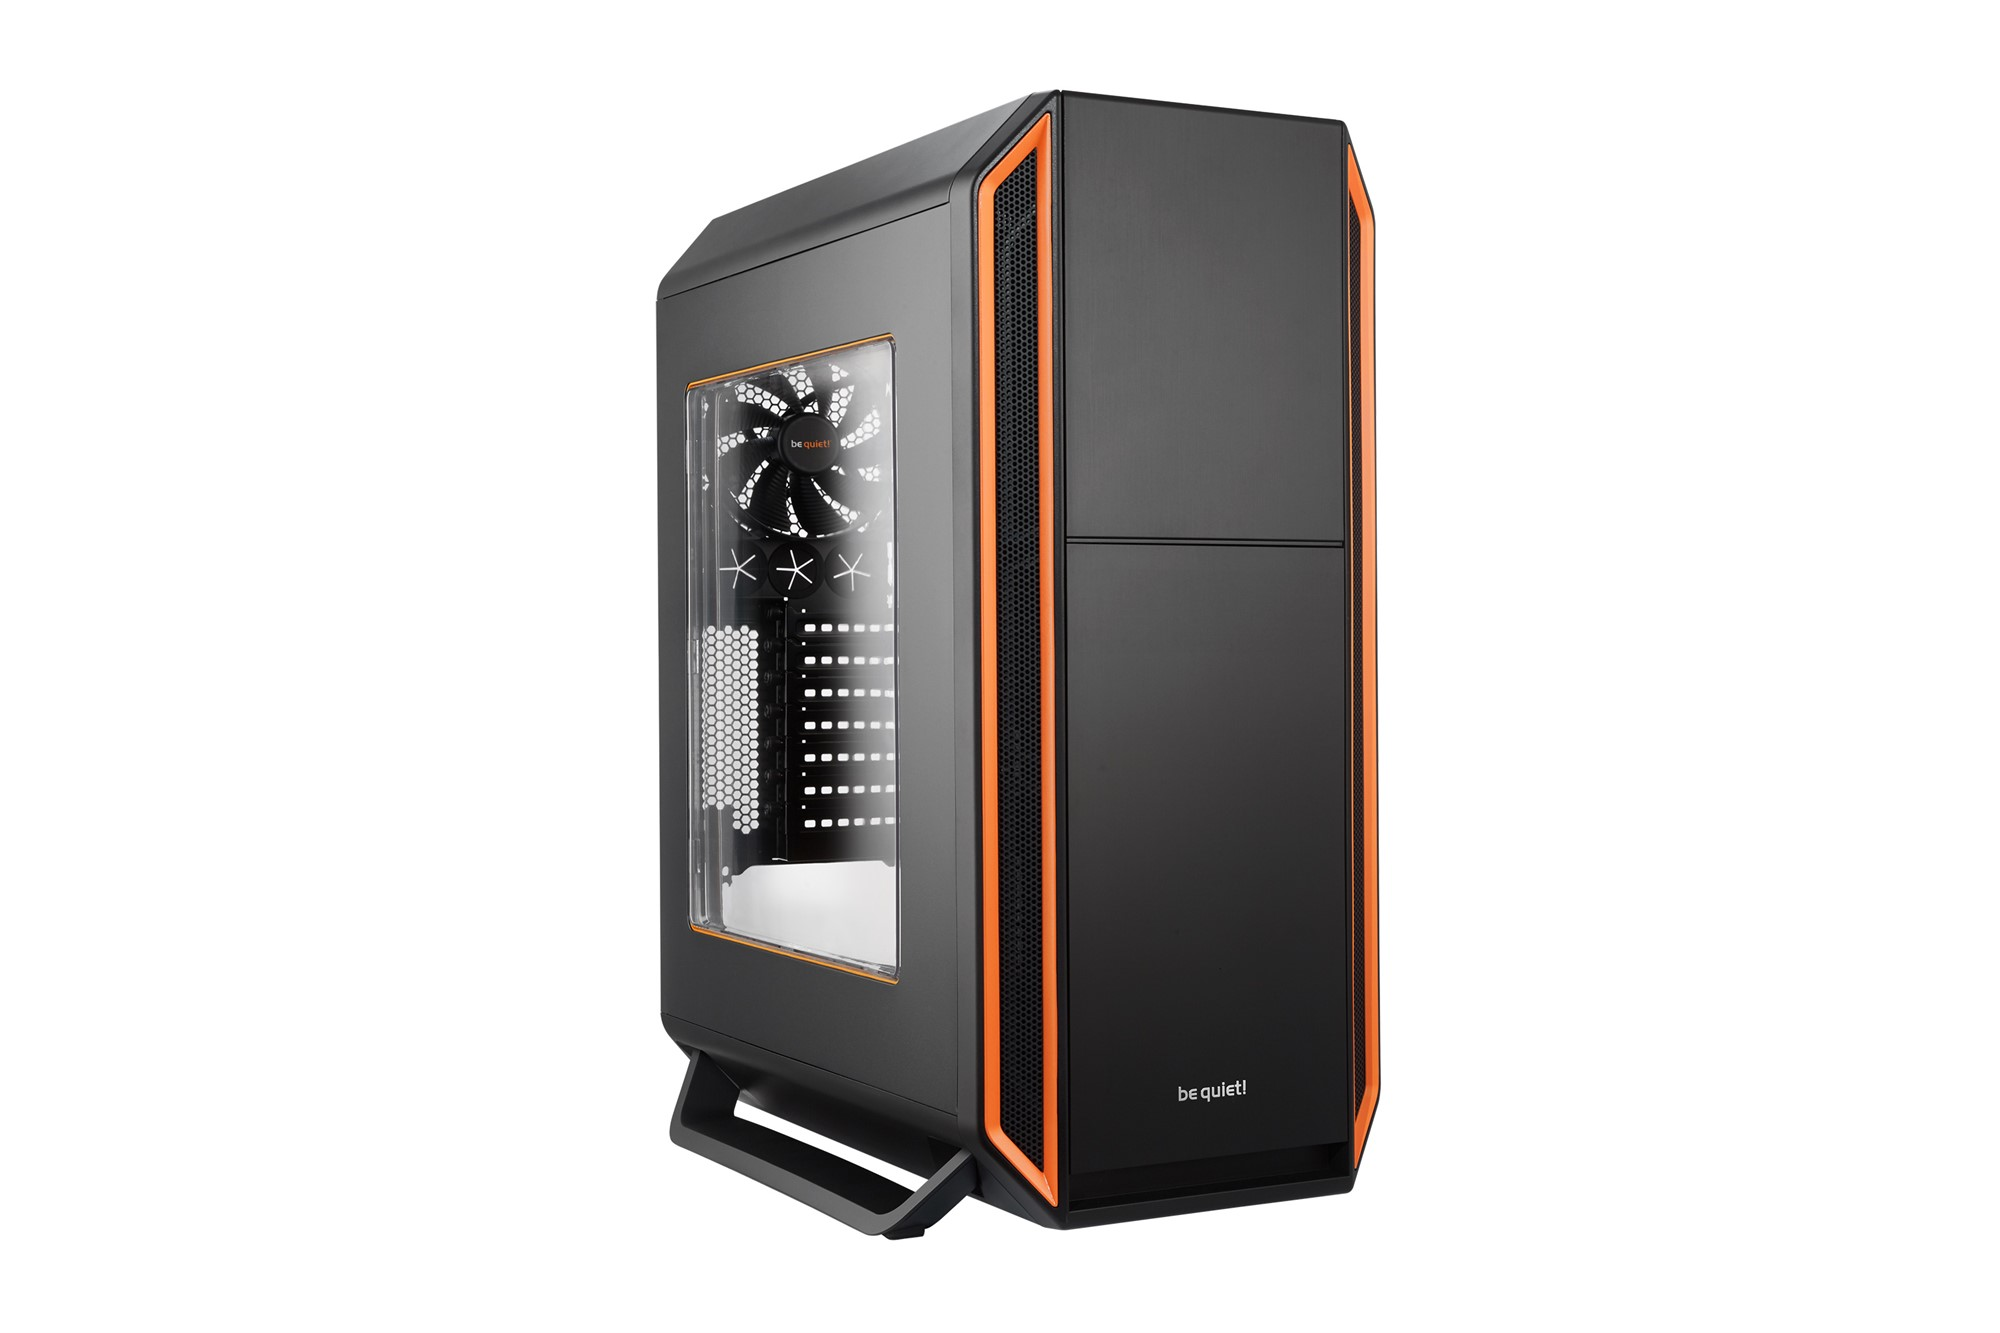 BE QUIET! BGW01 SILENT BASE 800 TOWER BLACK,ORANGE COMPUTER CASE